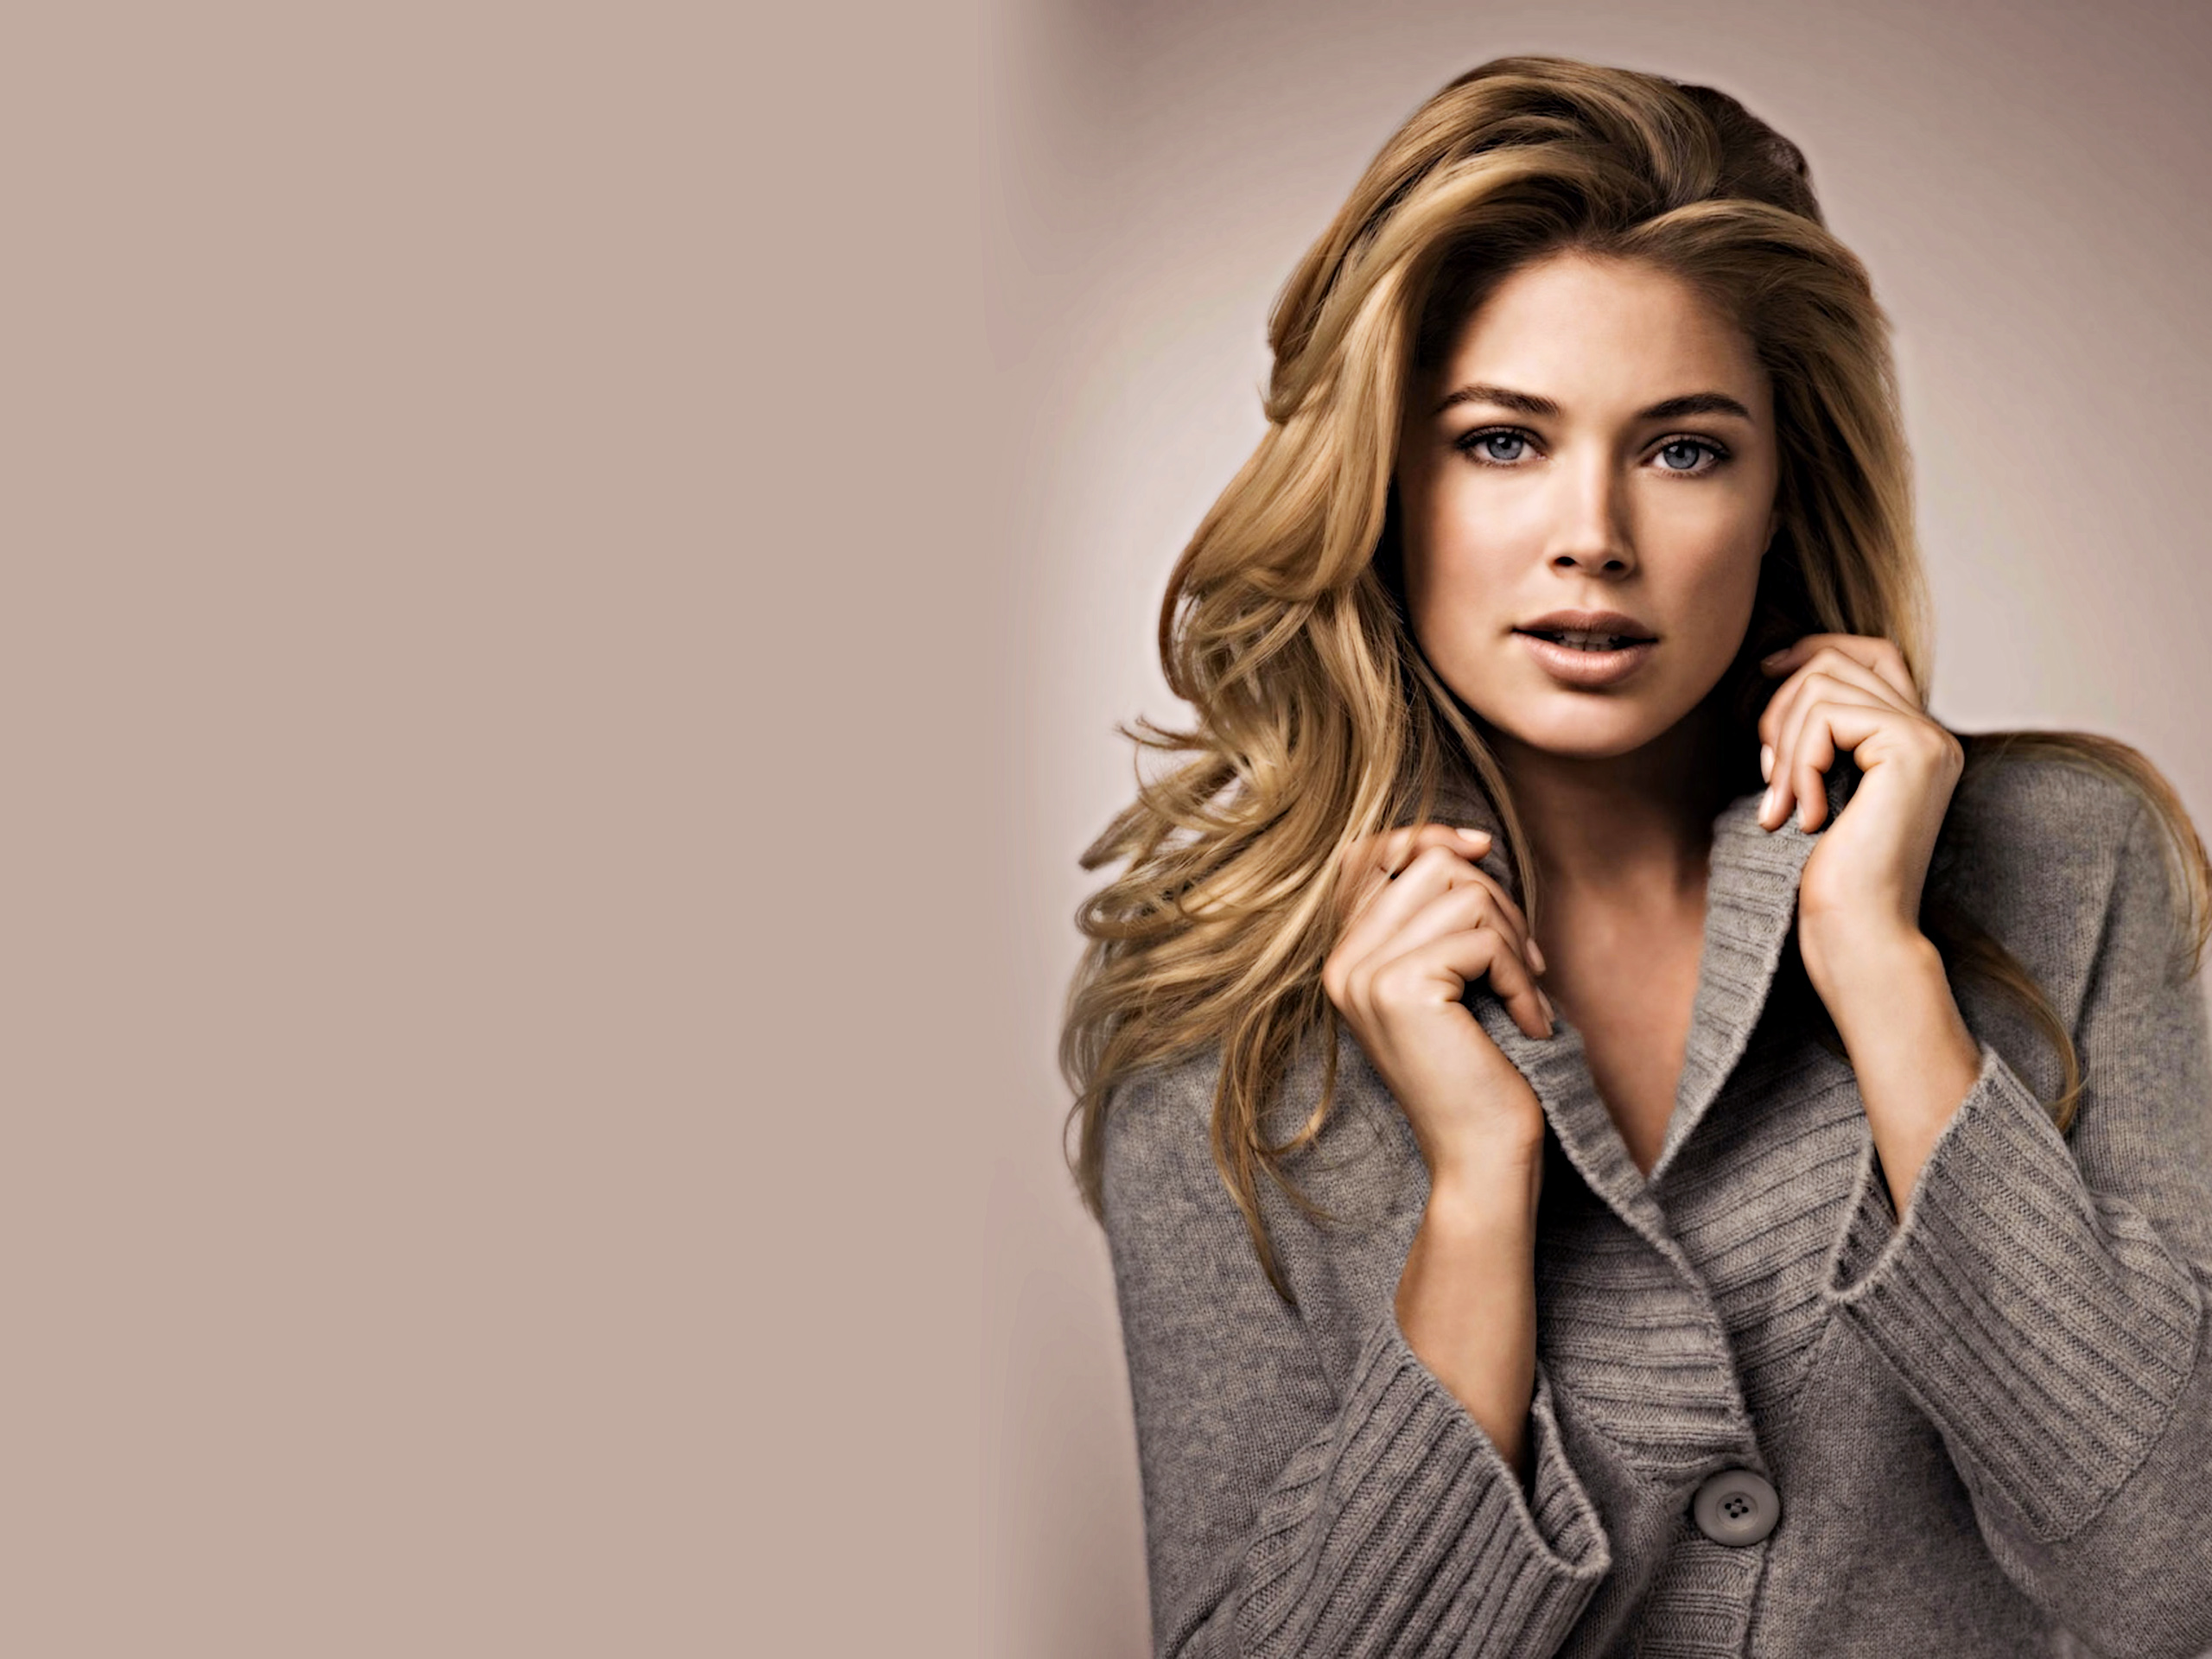 fantastic doutzen kroes face desktop mobile hd background free images